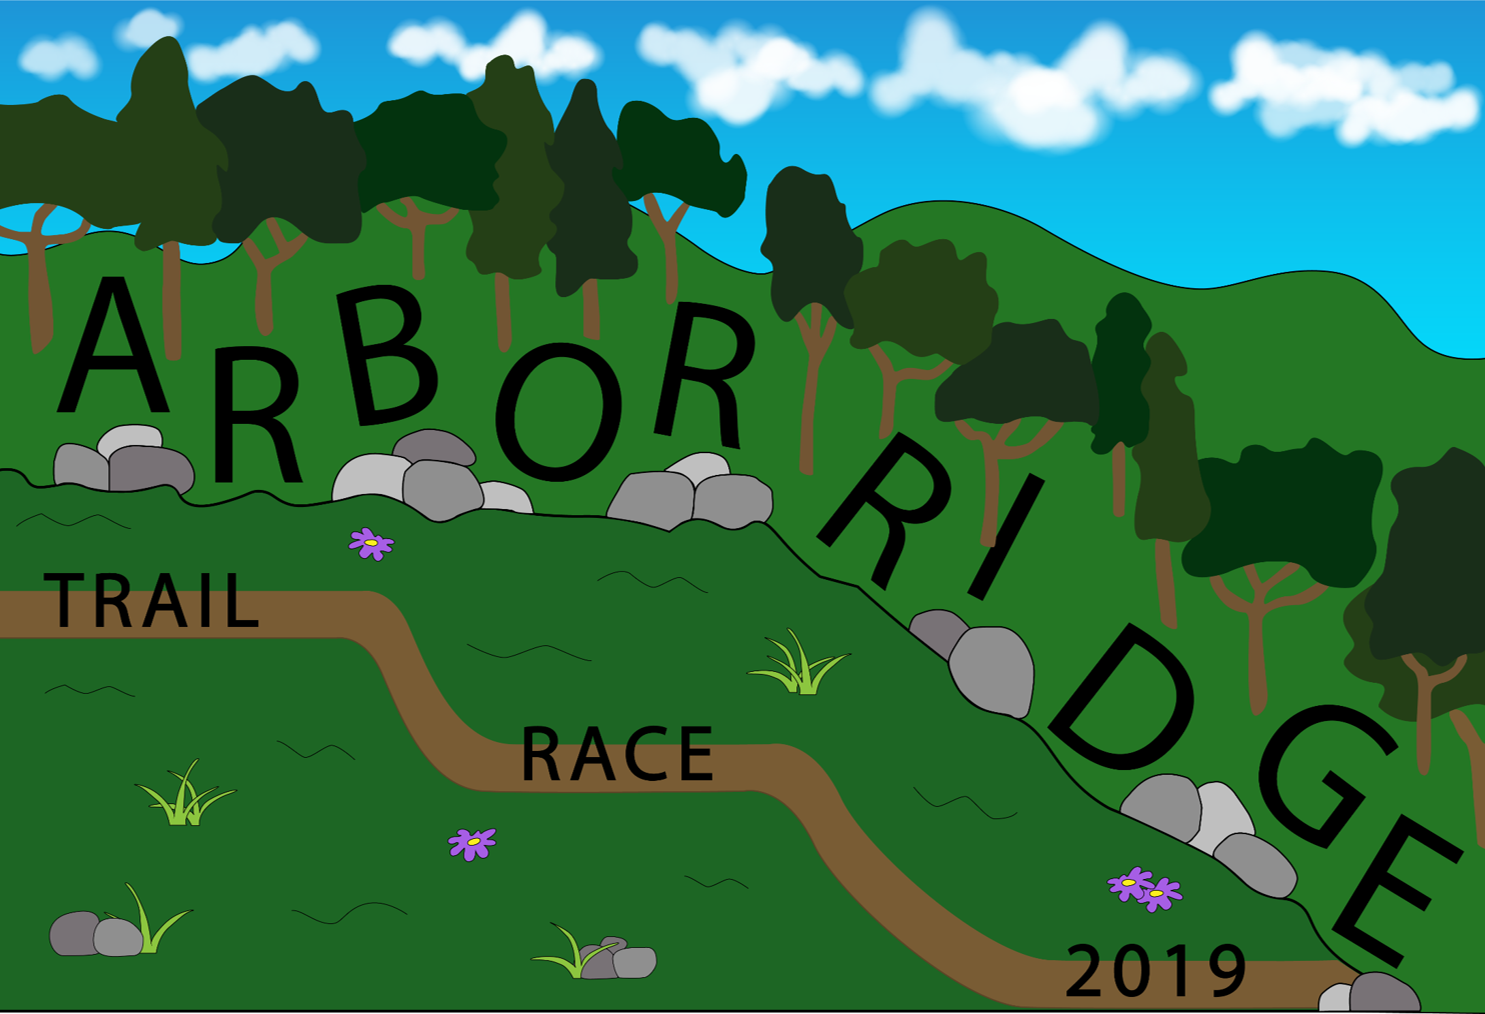 2019 Results & Photos - August 3, 2019Click Here for Race ResultsClick Here for Creek Crossing 1 PhotosClick Here for Creek Crossing 2 PhotosClick Here for 8/16K Turnaround PhotosClick Here for Start/Finish Photos (more coming)Click Here from Absolute Race Timing photosAdd Your Own 2019 Photos Here